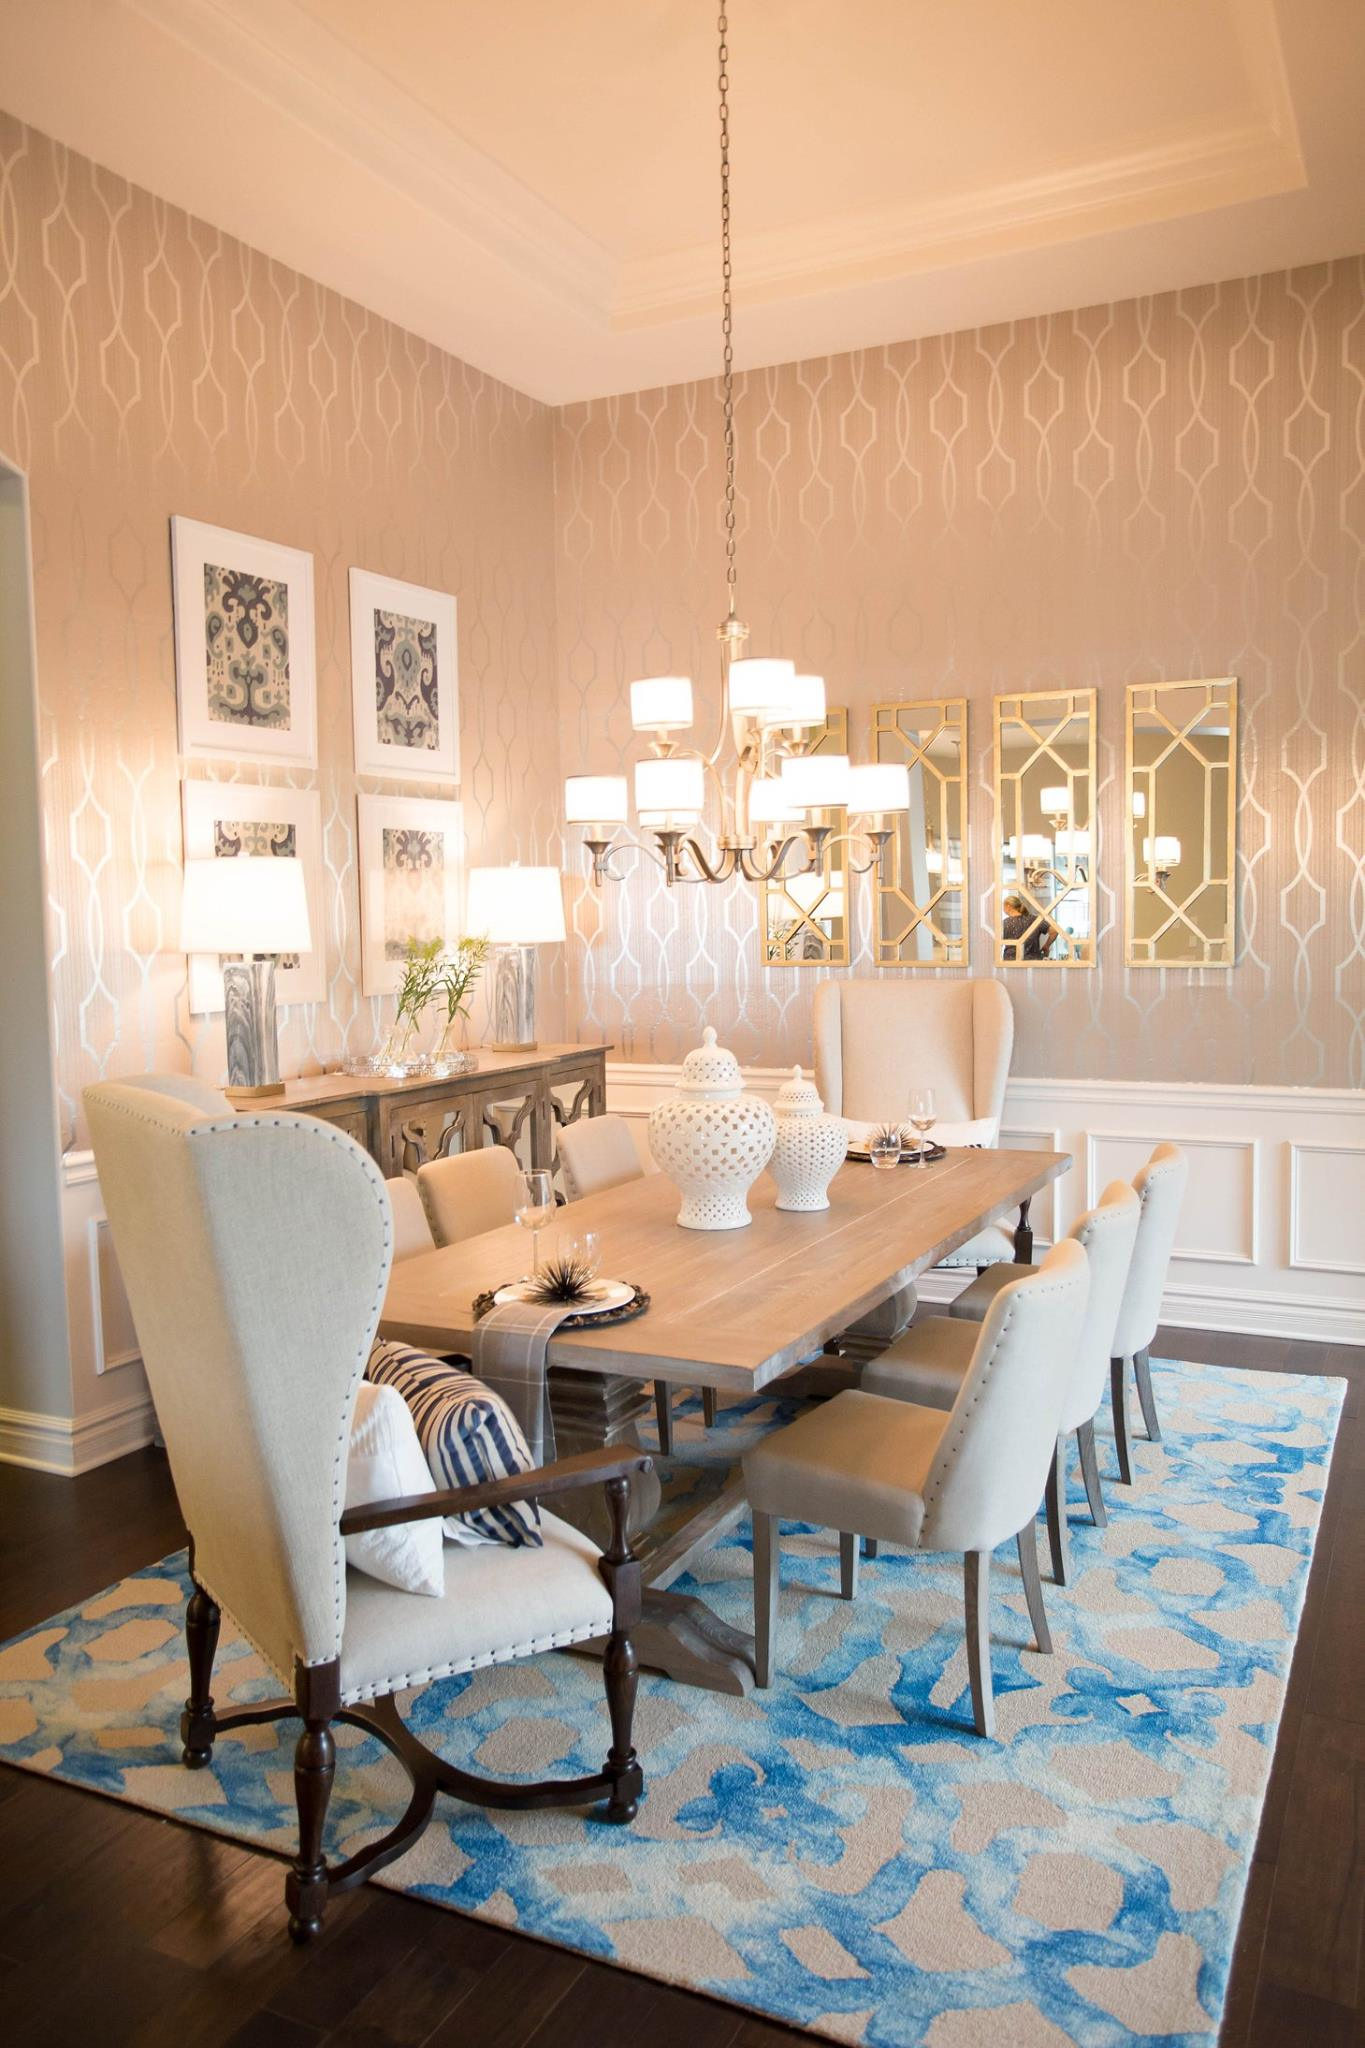 dining room 6 Tips On How to Decorate The Dining Room by A Professional Designer 9 6 Tips On How to Decorate The Dining Room by A Professional Designer